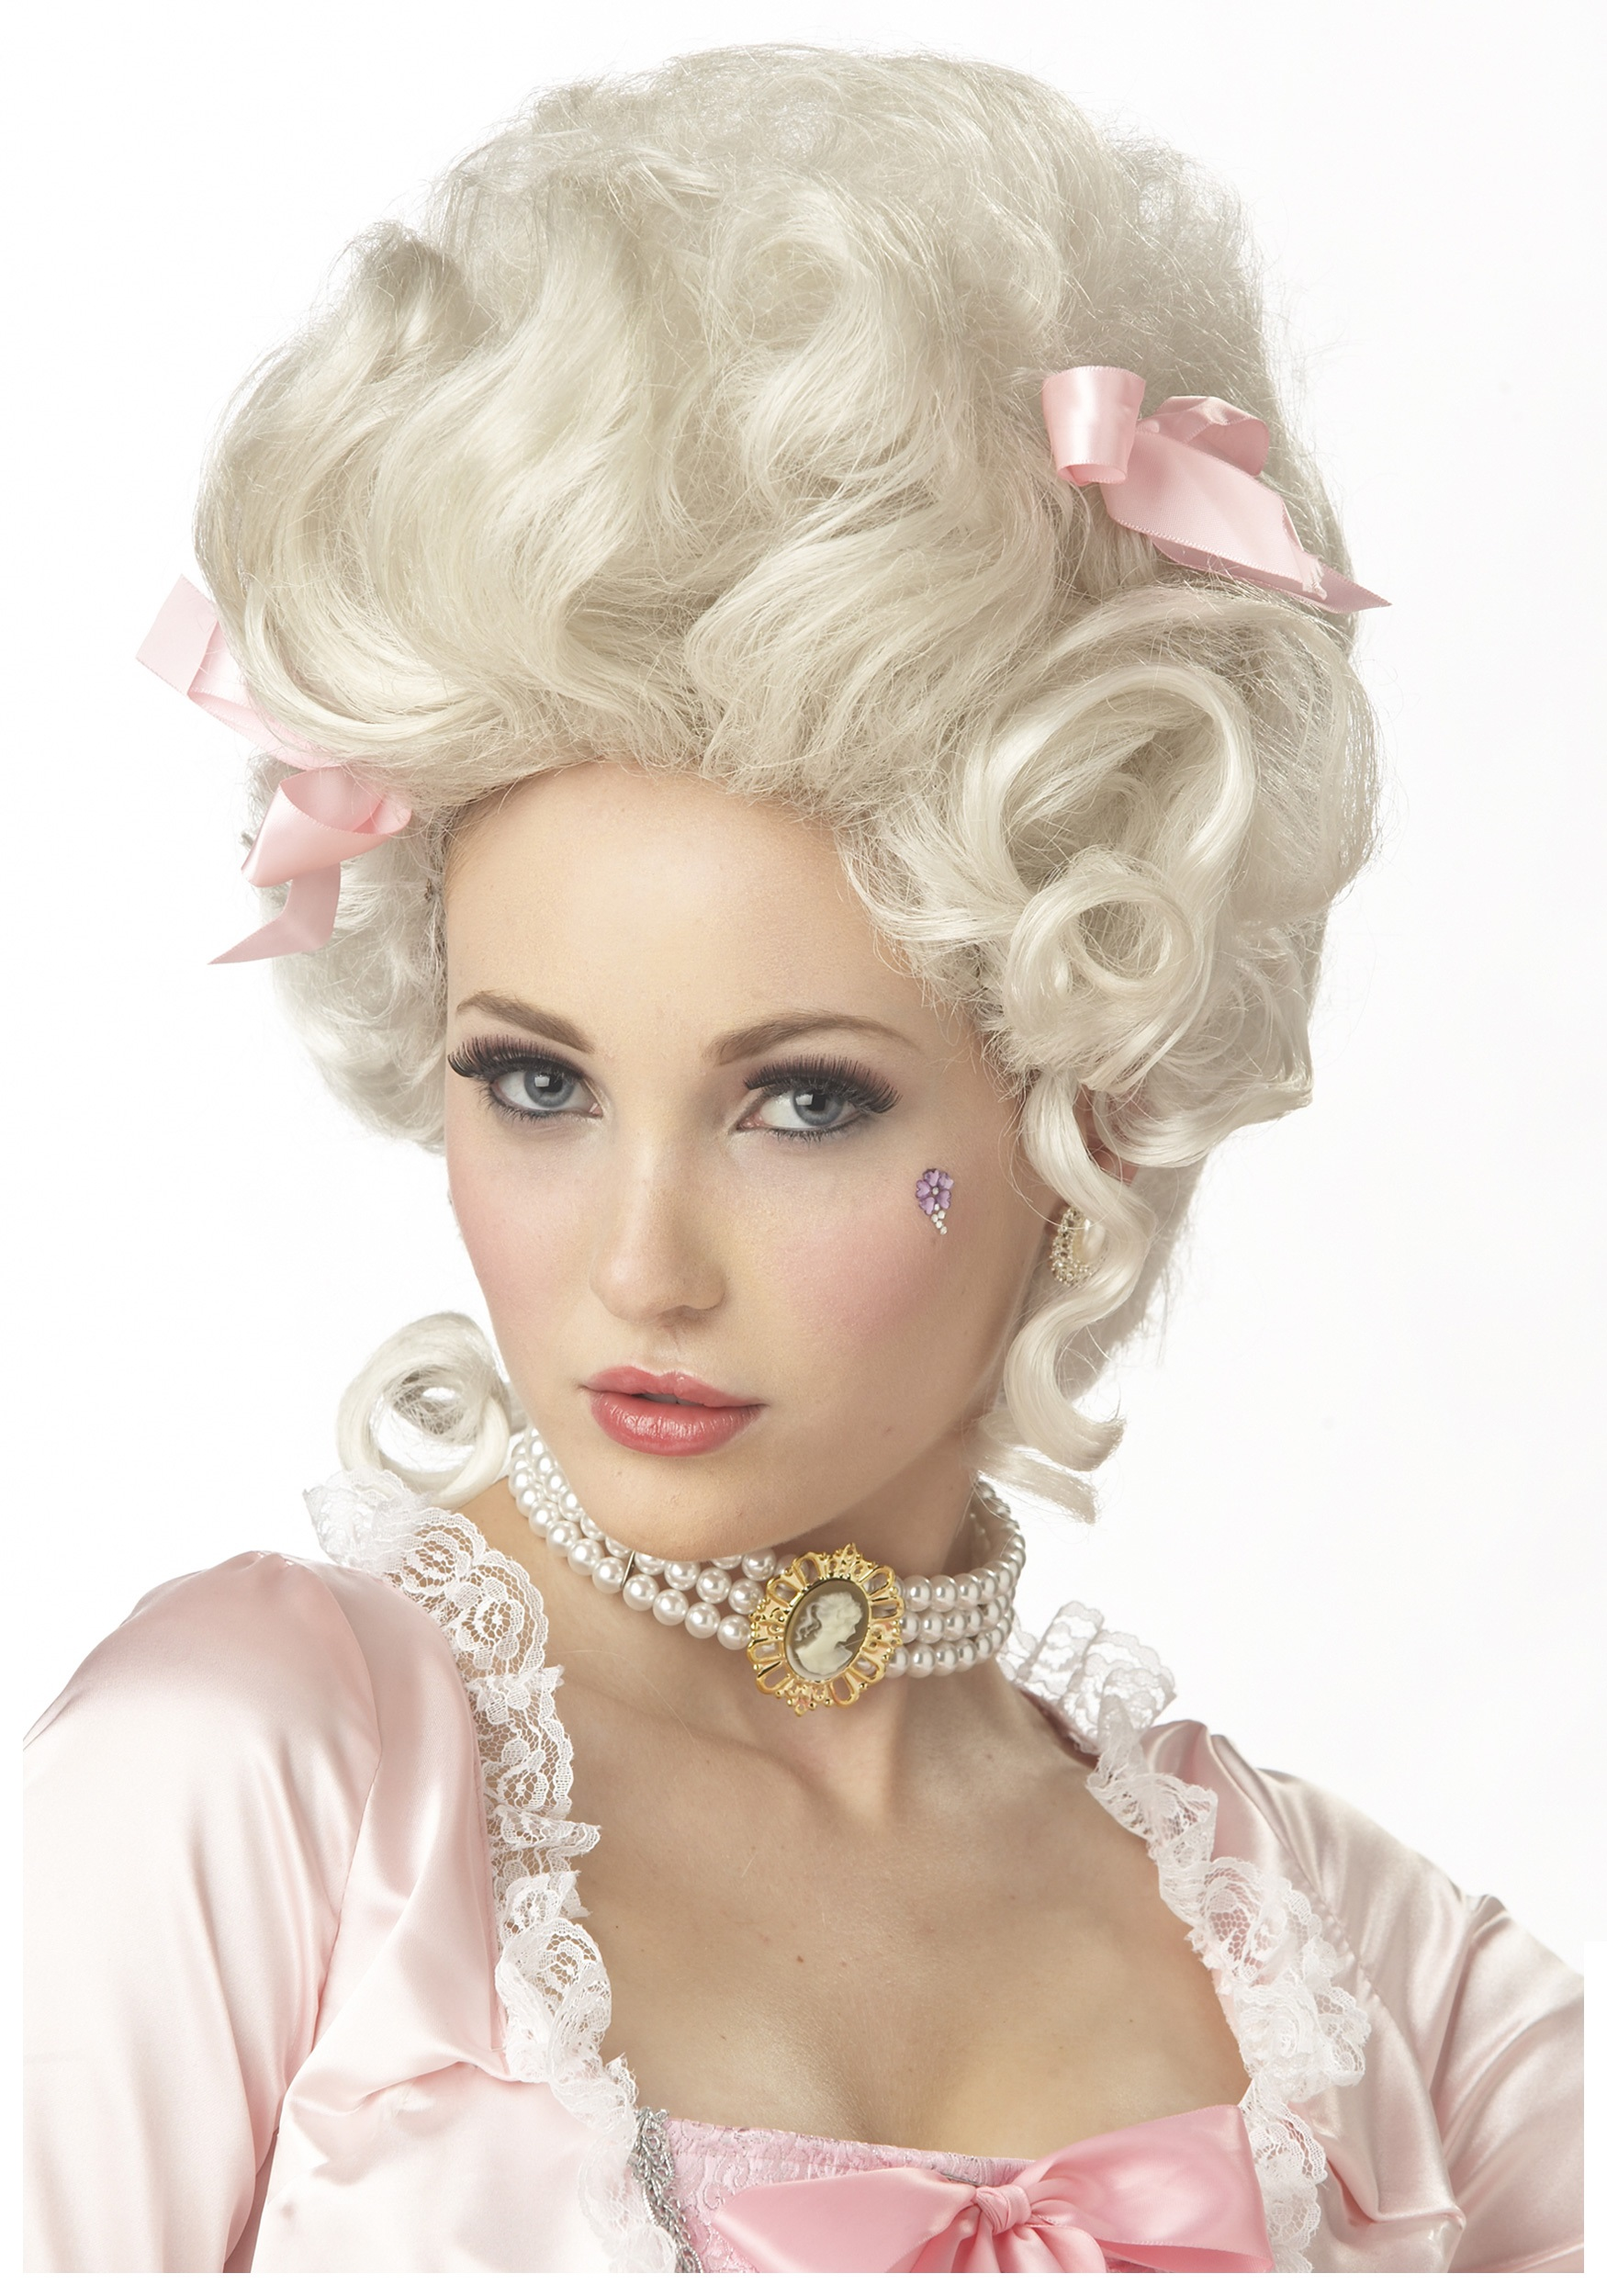 French Marie Antoinette Wig International Adult Costume Wigs